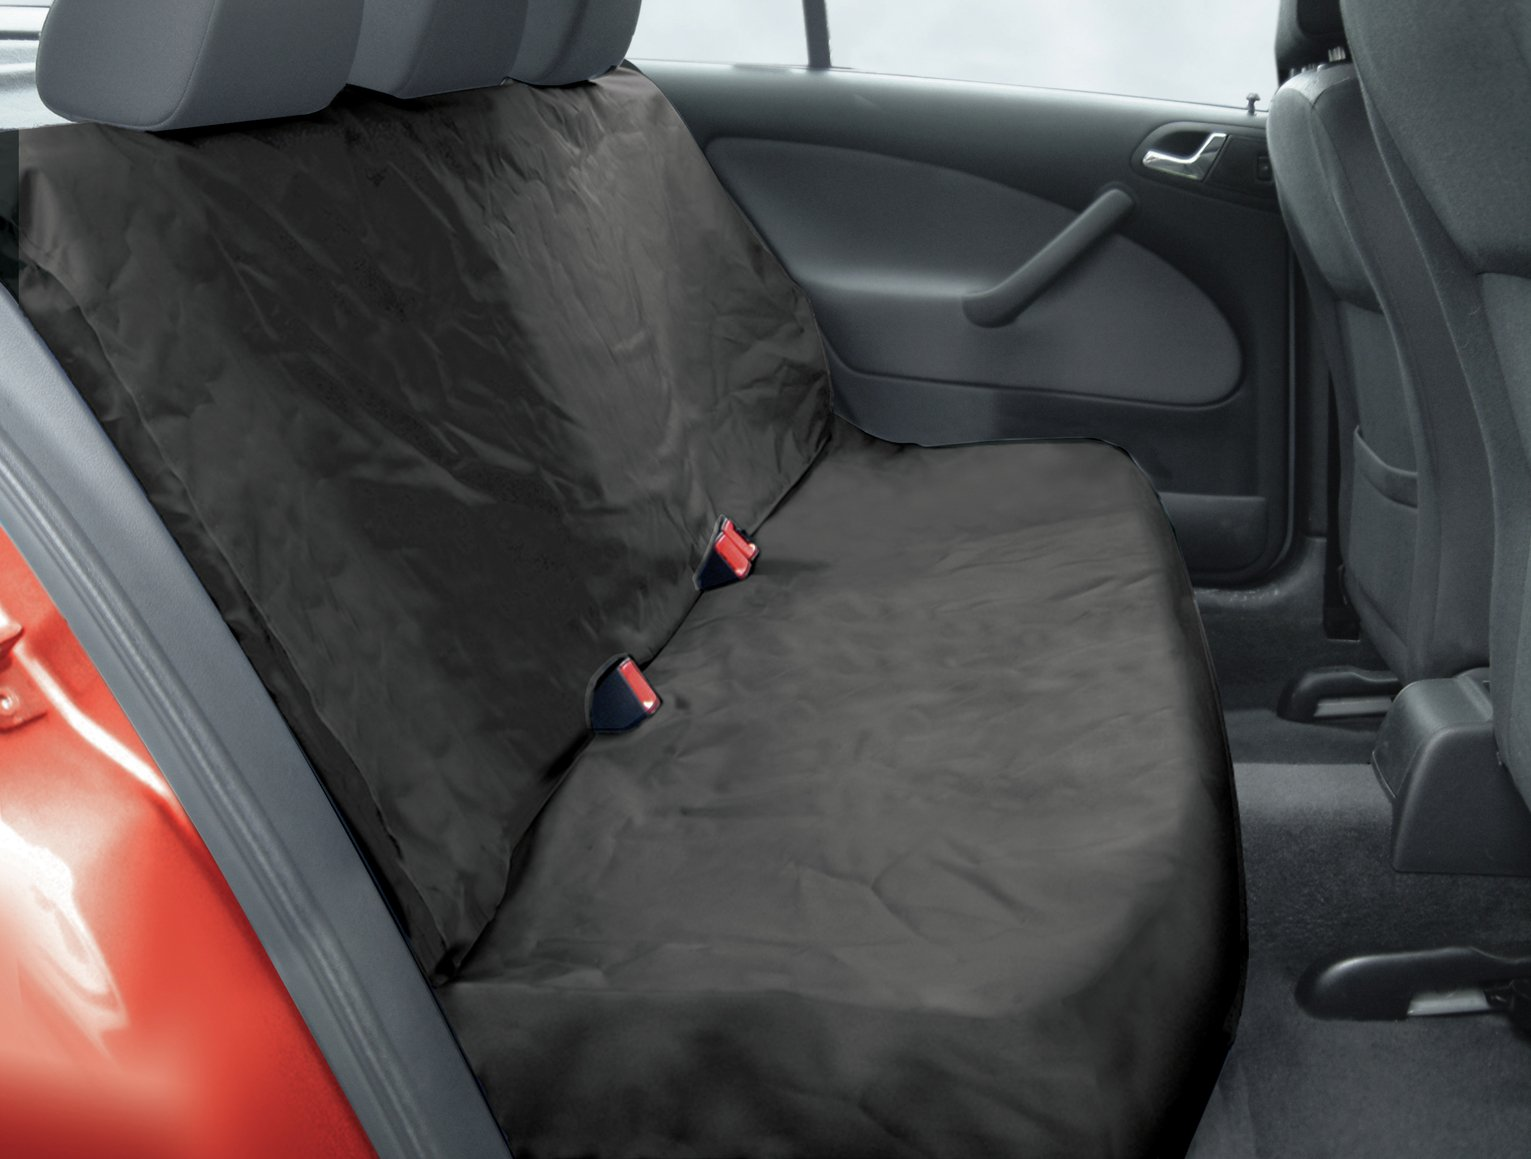 Streetwize Water Resistant Car Seat Cover review